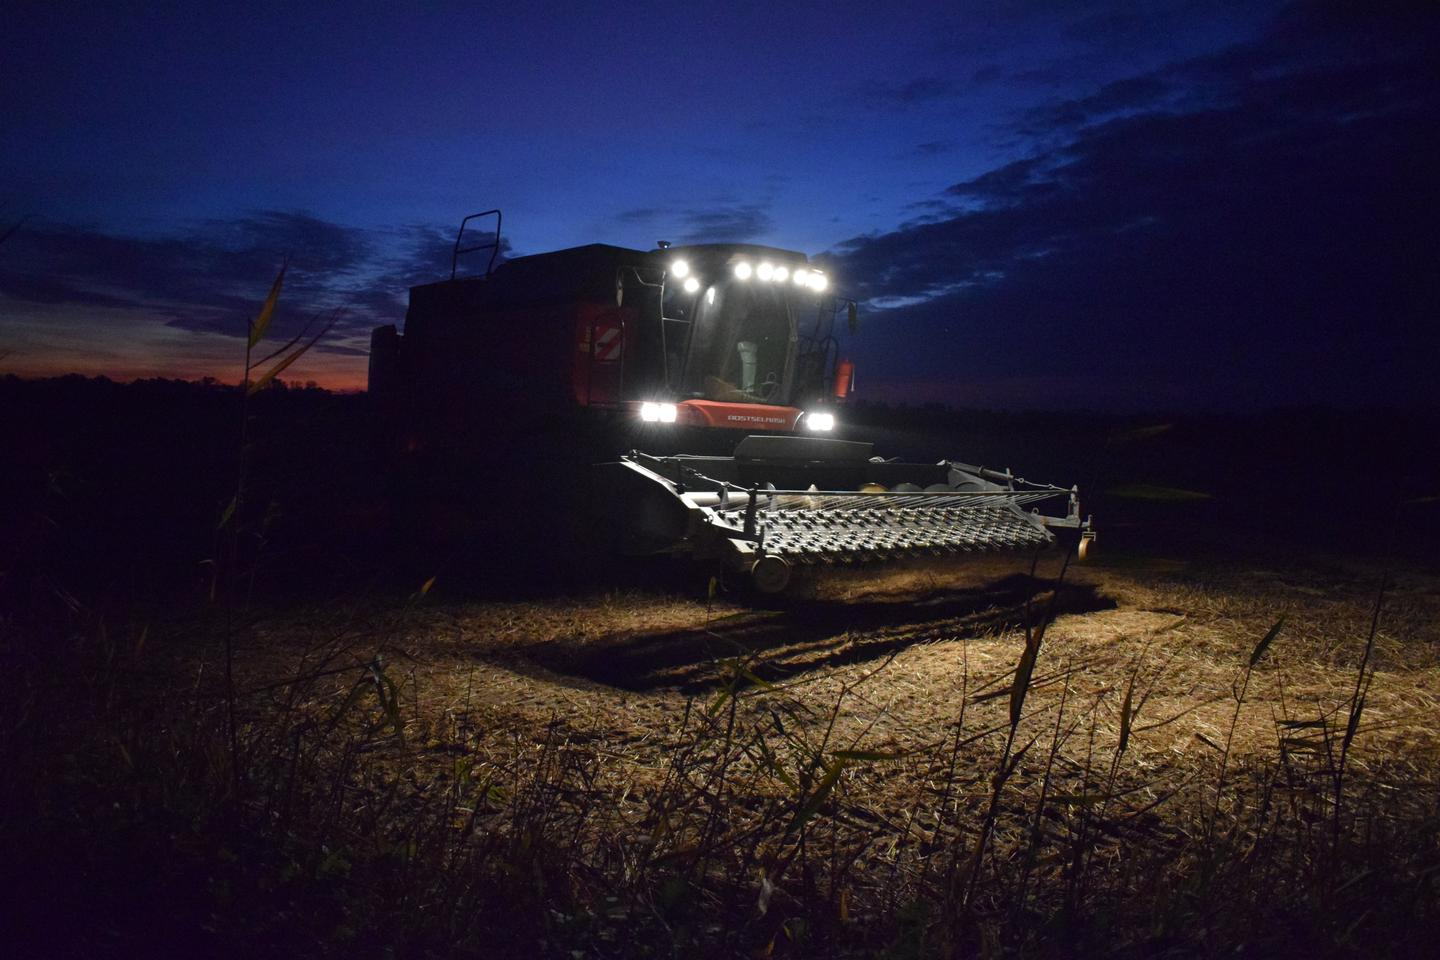 The Cognitive Agro Pilot is reported to work in all weather and lighting conditions